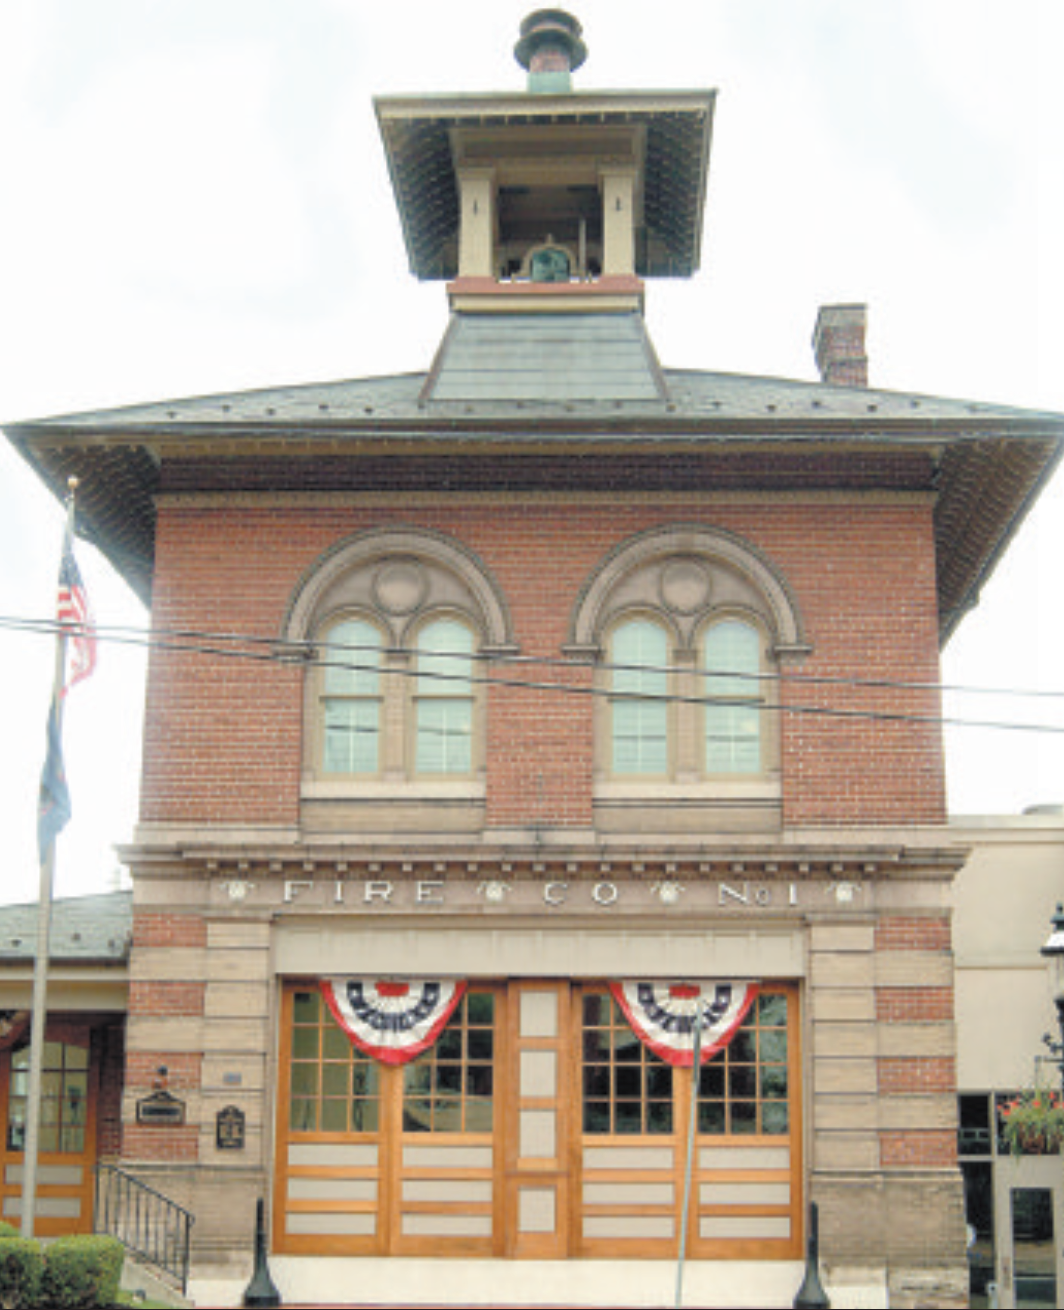 Doylestown Firehouse, photograph by Mark Markgraff